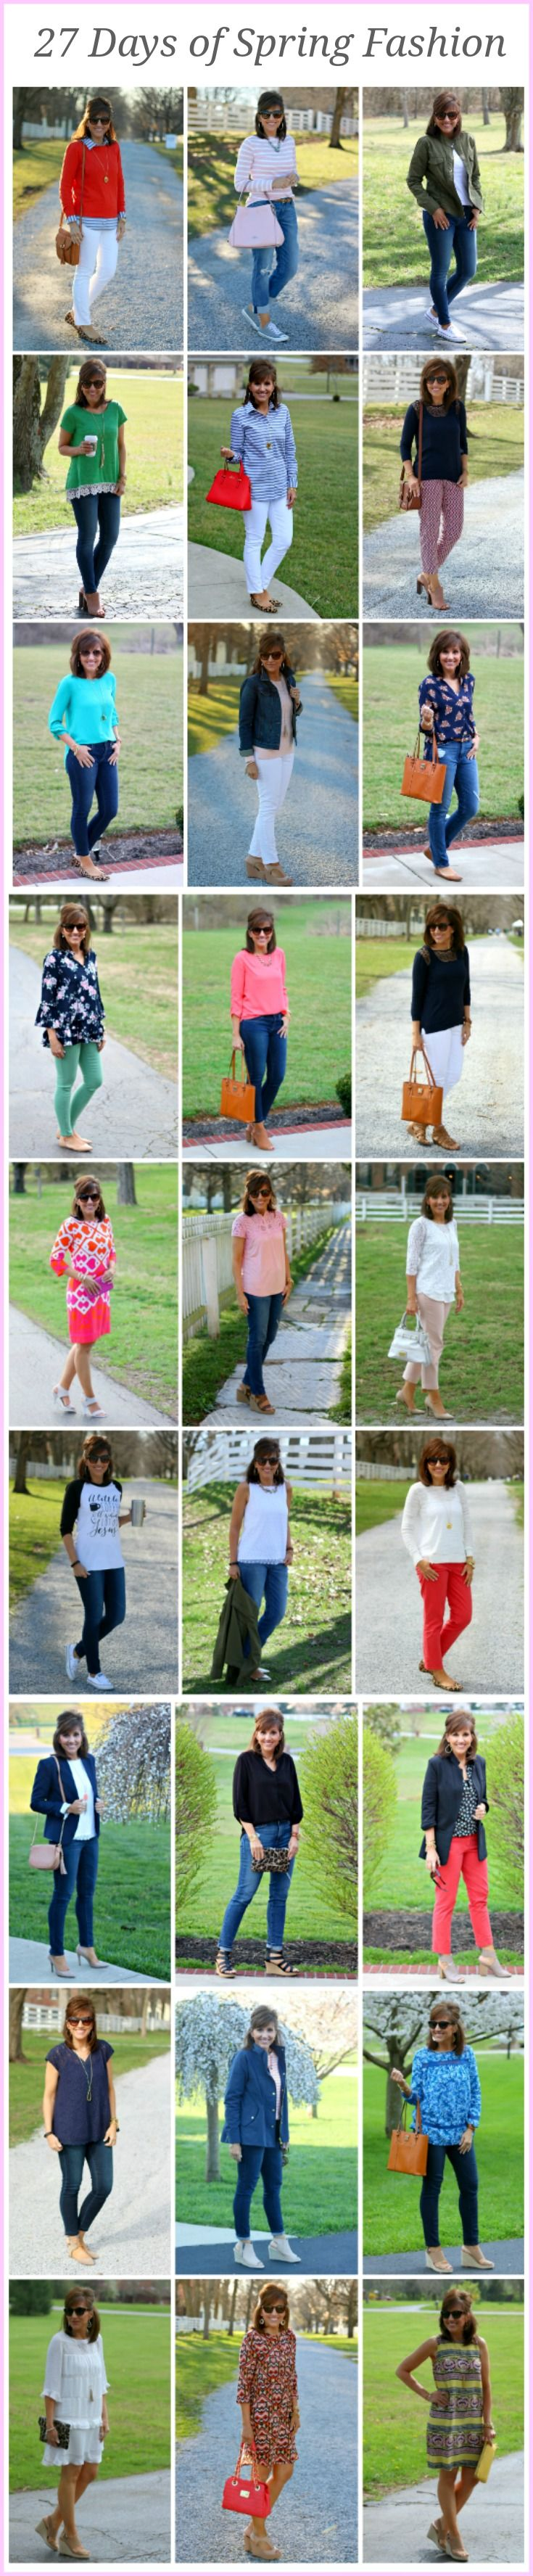 27 Days of Spring Fashion 2016 Recap for women over 40 Like and Repin.  Noelito Flow instagram http://www.instagram.com/noelitoflow